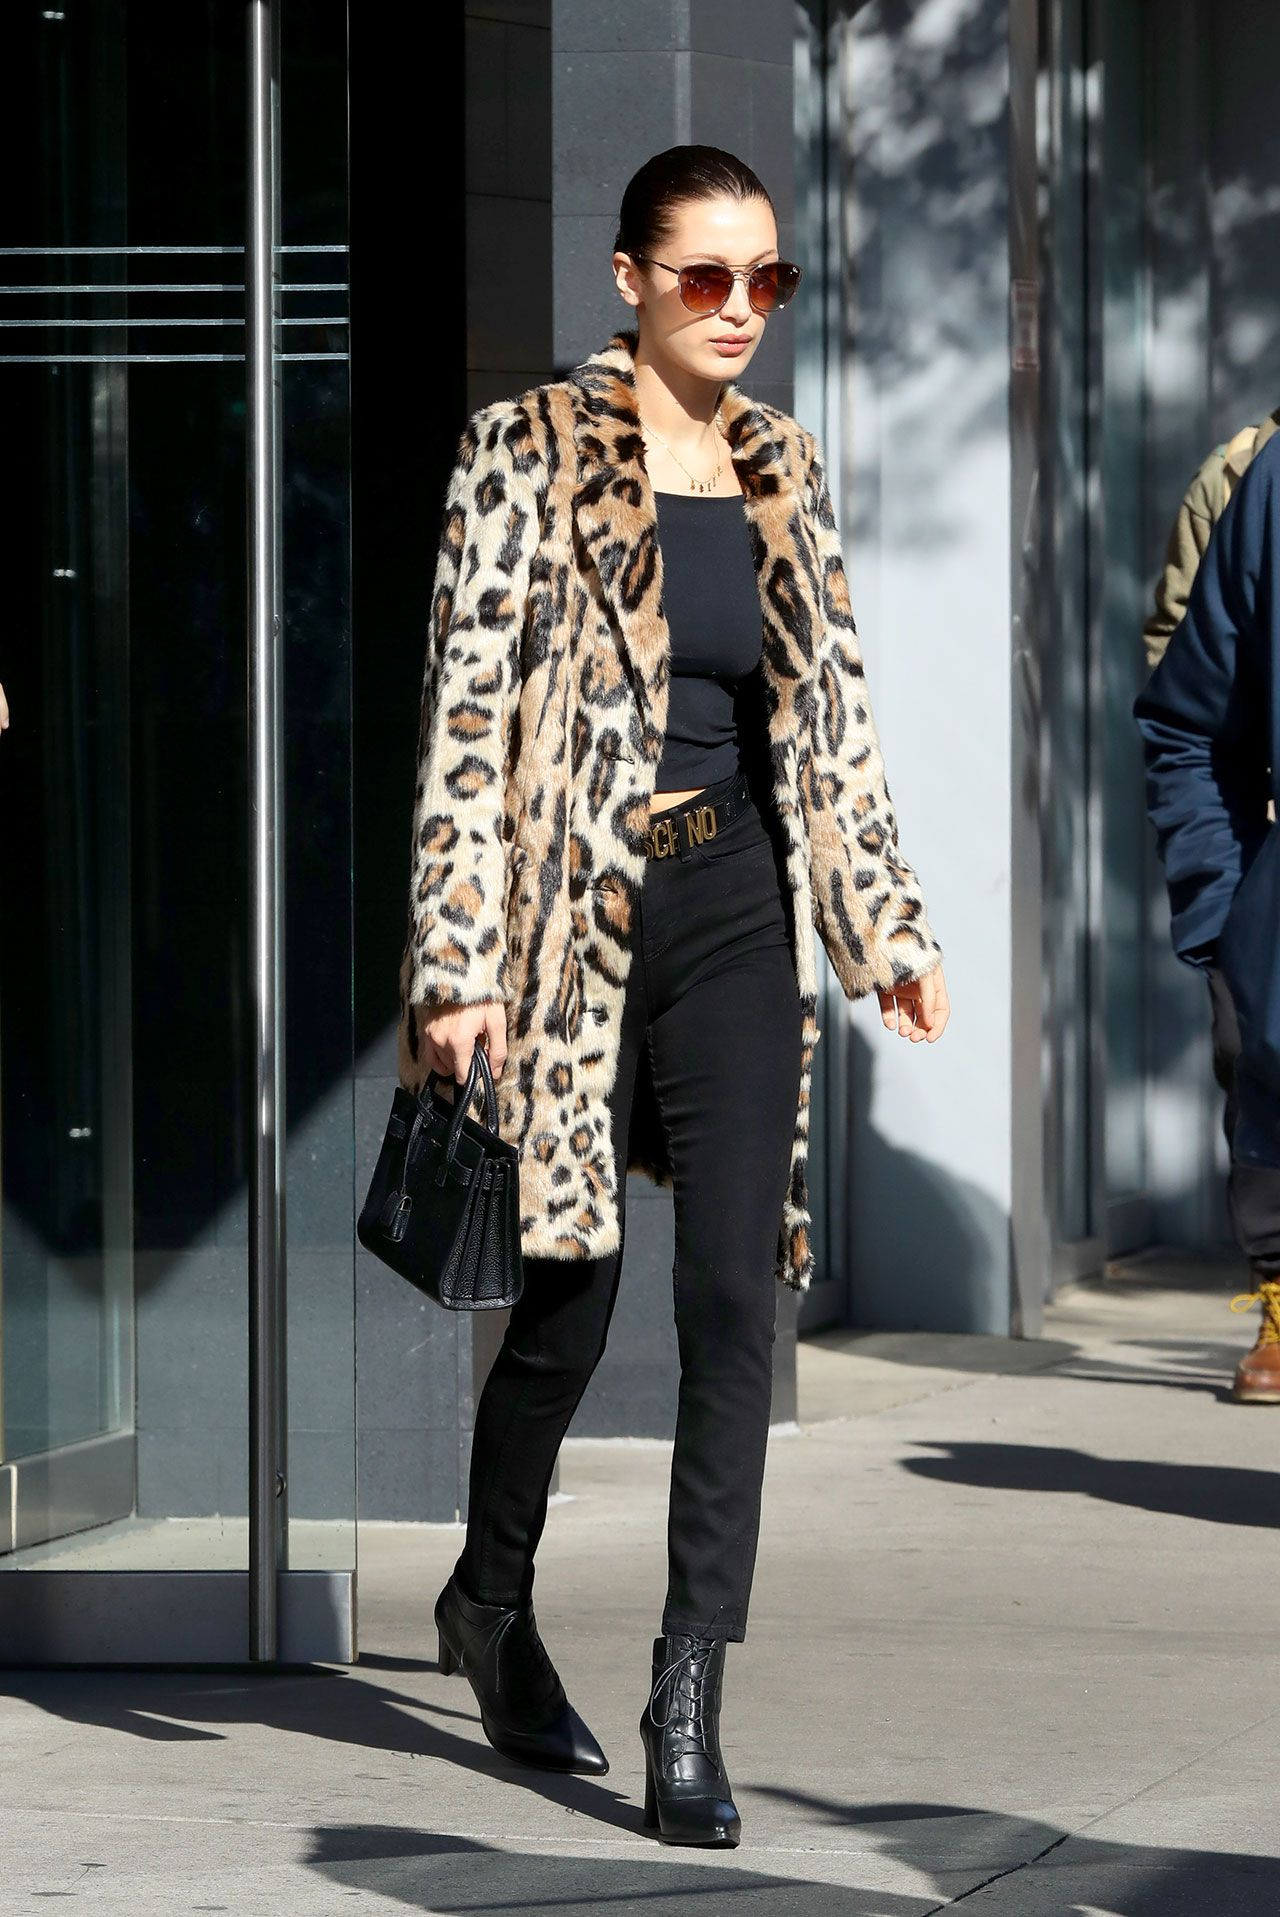 This Coat Style Is Easily One of the Biggest Trends at Fashion Week This Coat Style Is Easily One of the Biggest Trends at Fashion Week new foto